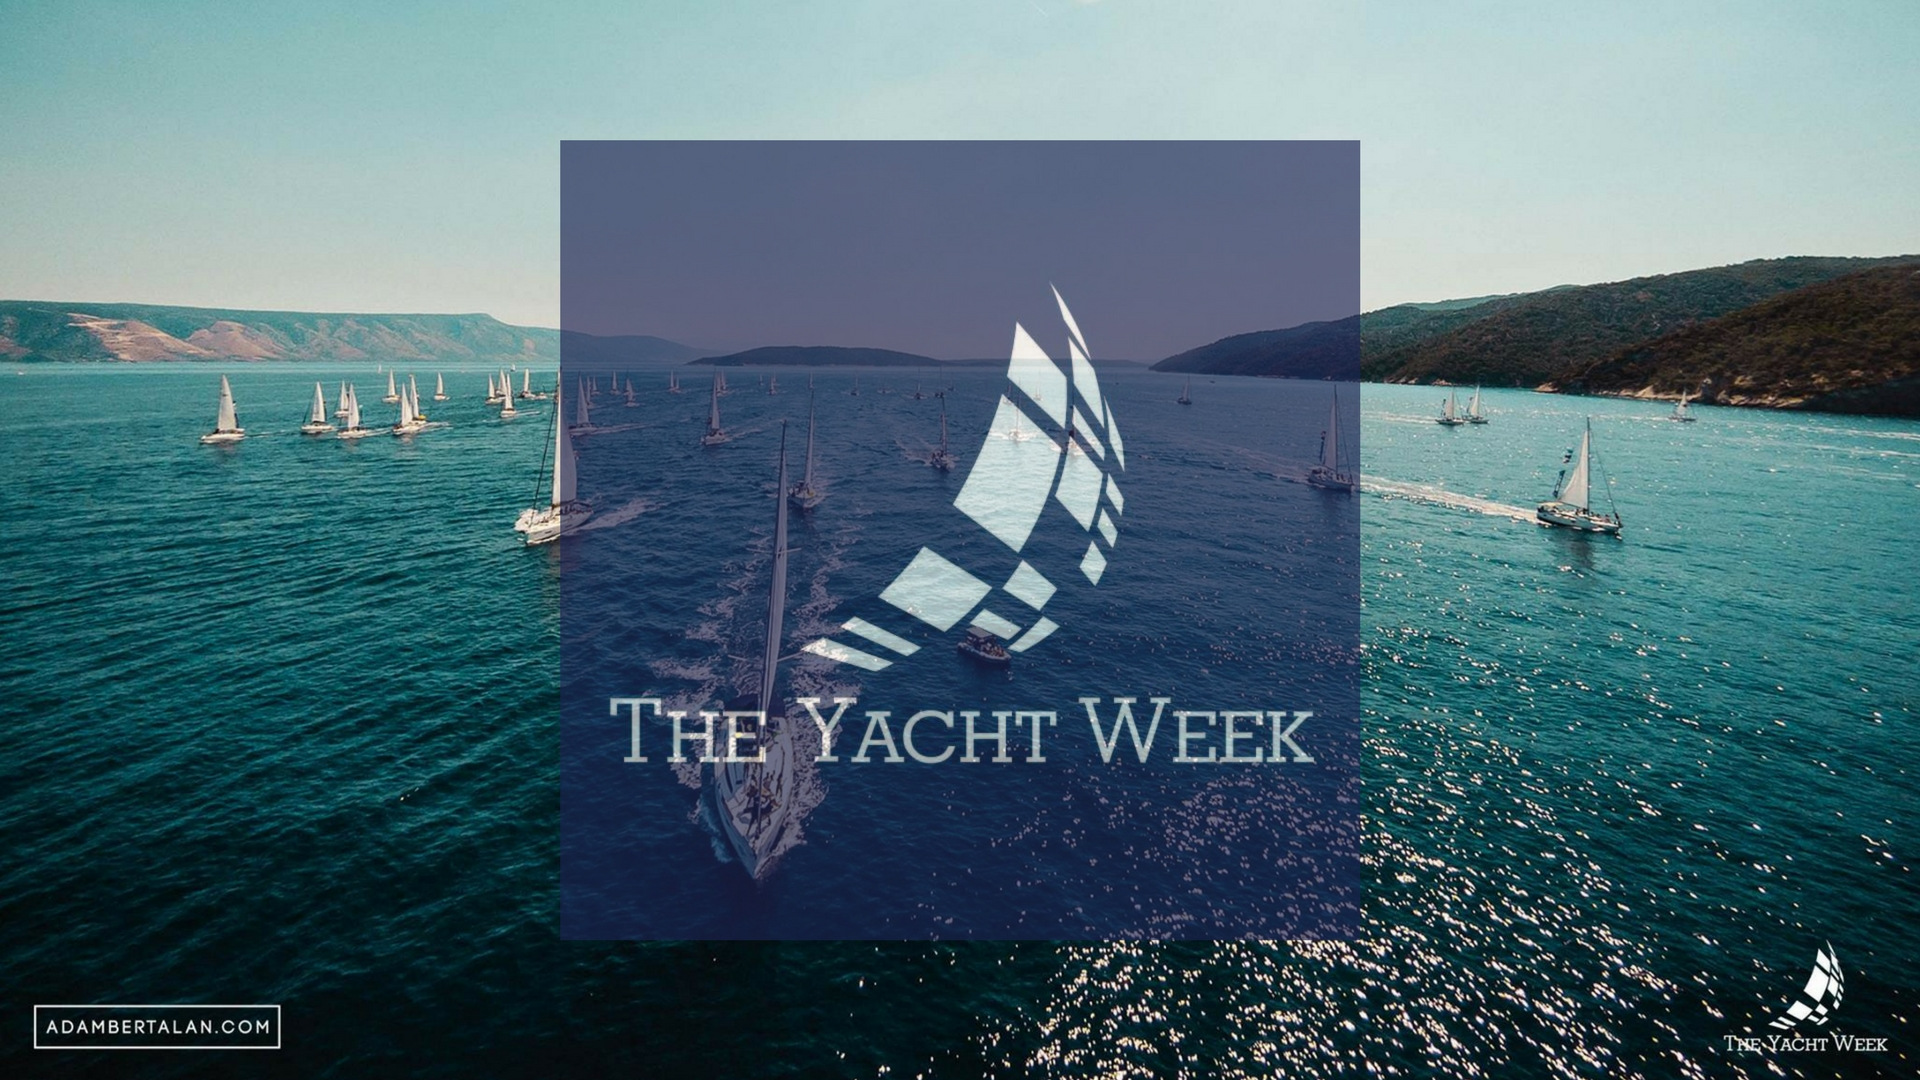 Don't Miss It!!! 2018 @TheYachtWeek  #NoCriticsJustArtists #SeeYouInTheWater